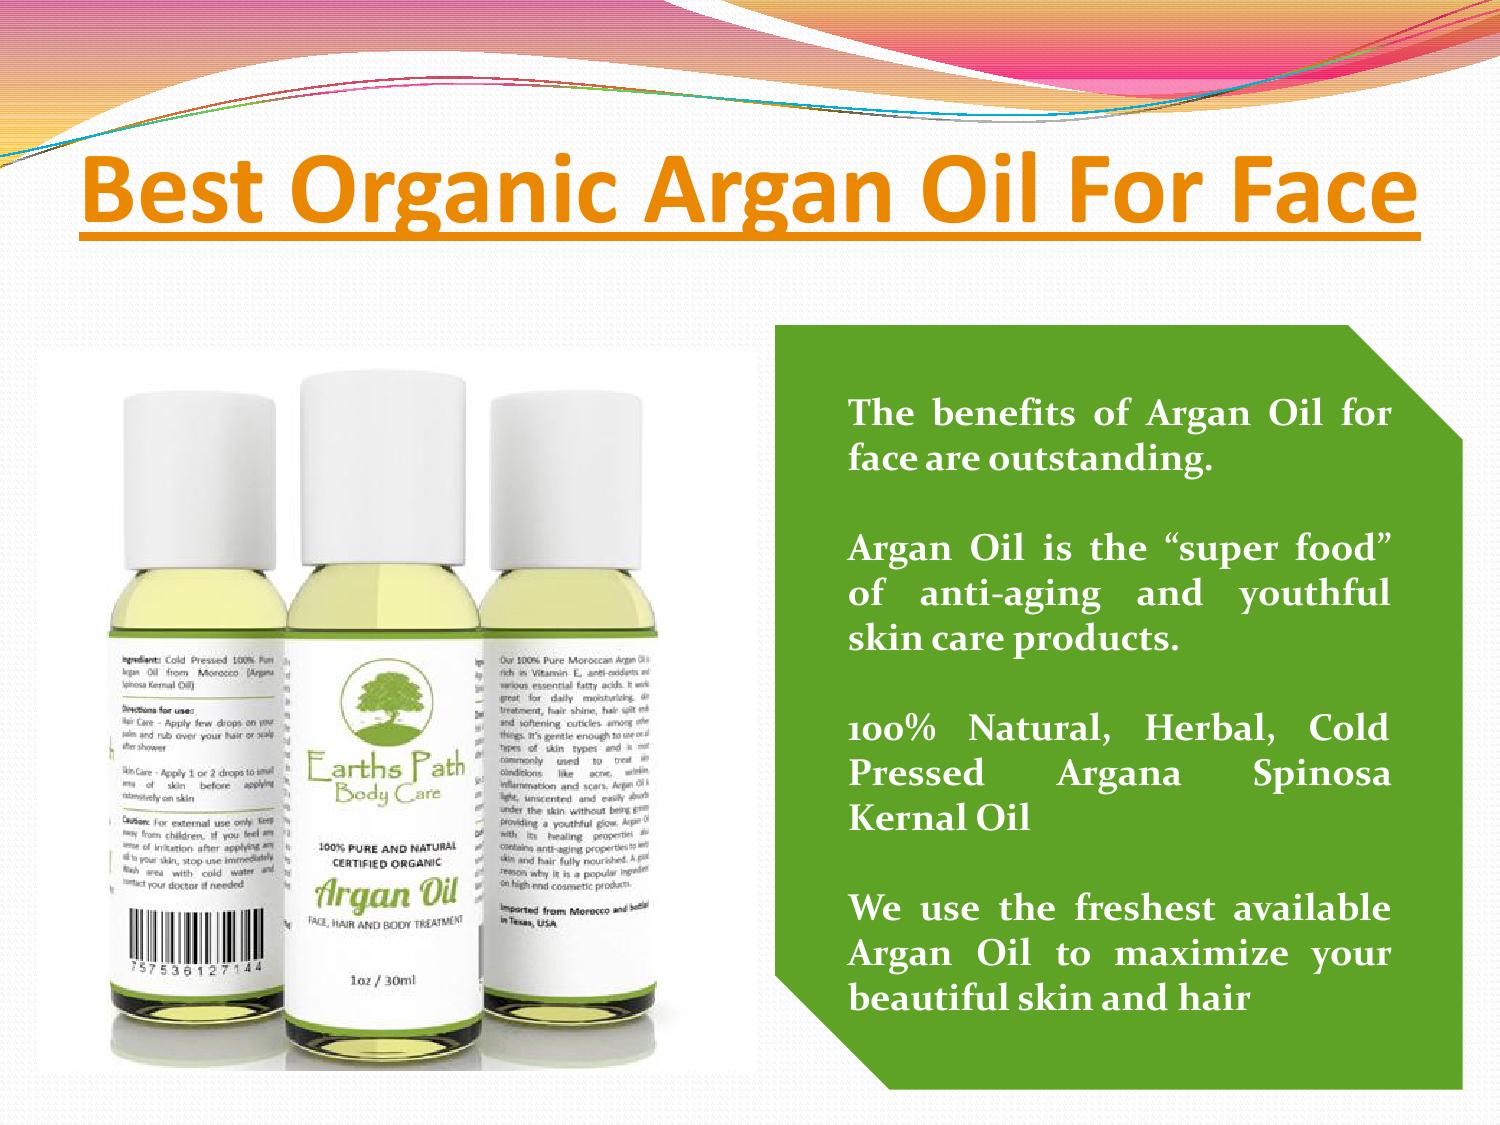 Argan Oil Benefits for Face